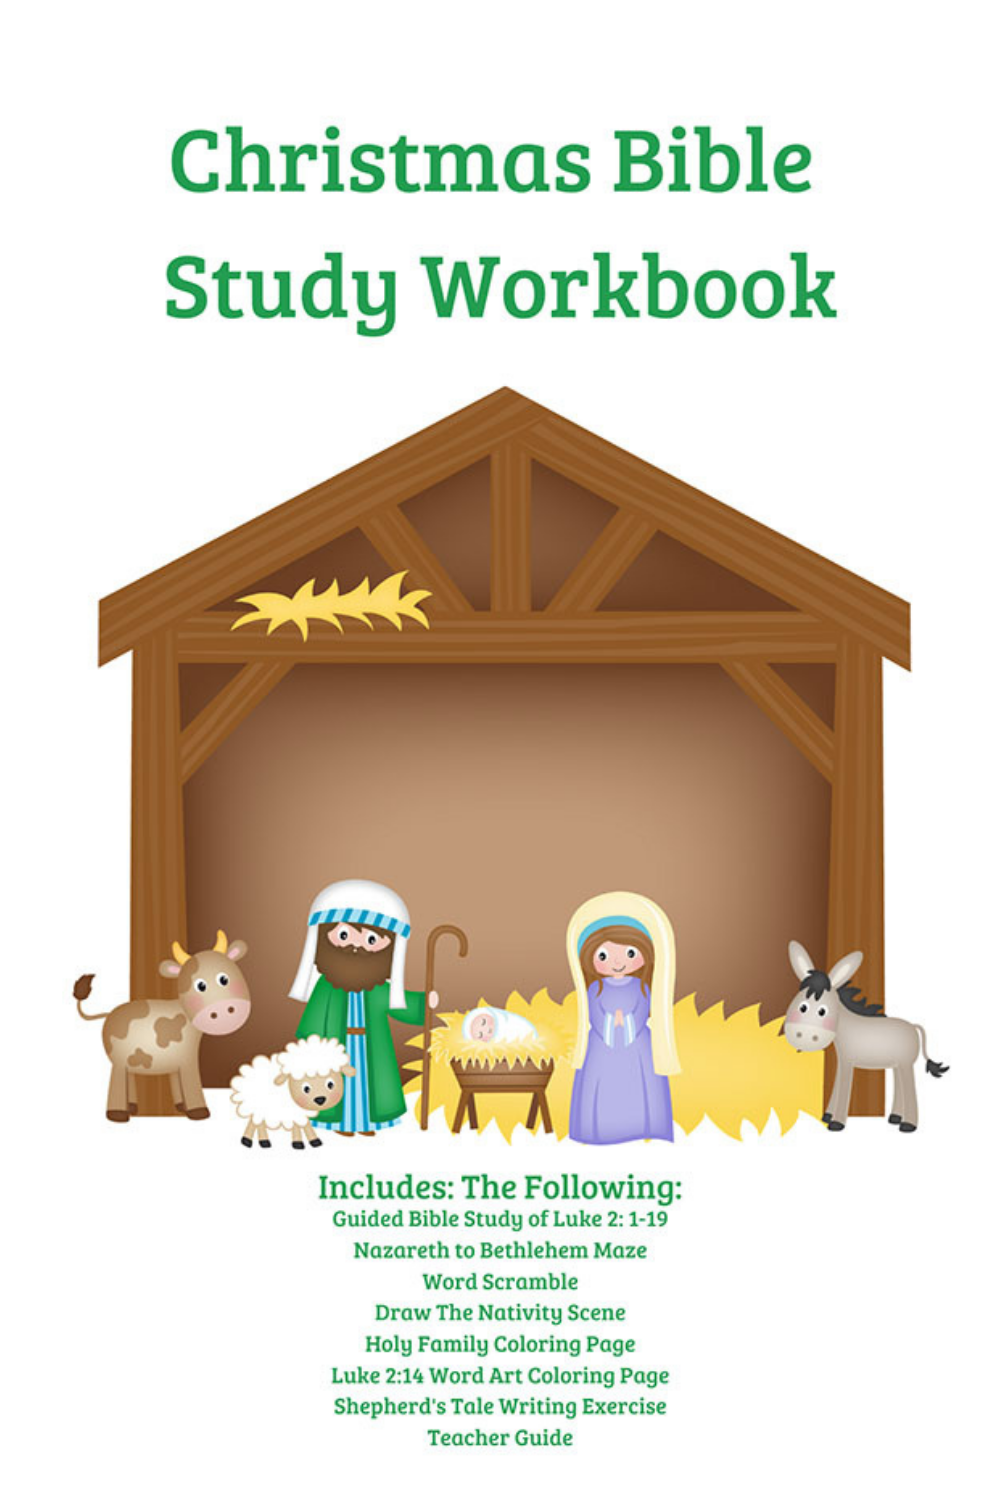 Christmas Bible Study 2020 This Christmas Bible Study for Kids Guides Them Through The